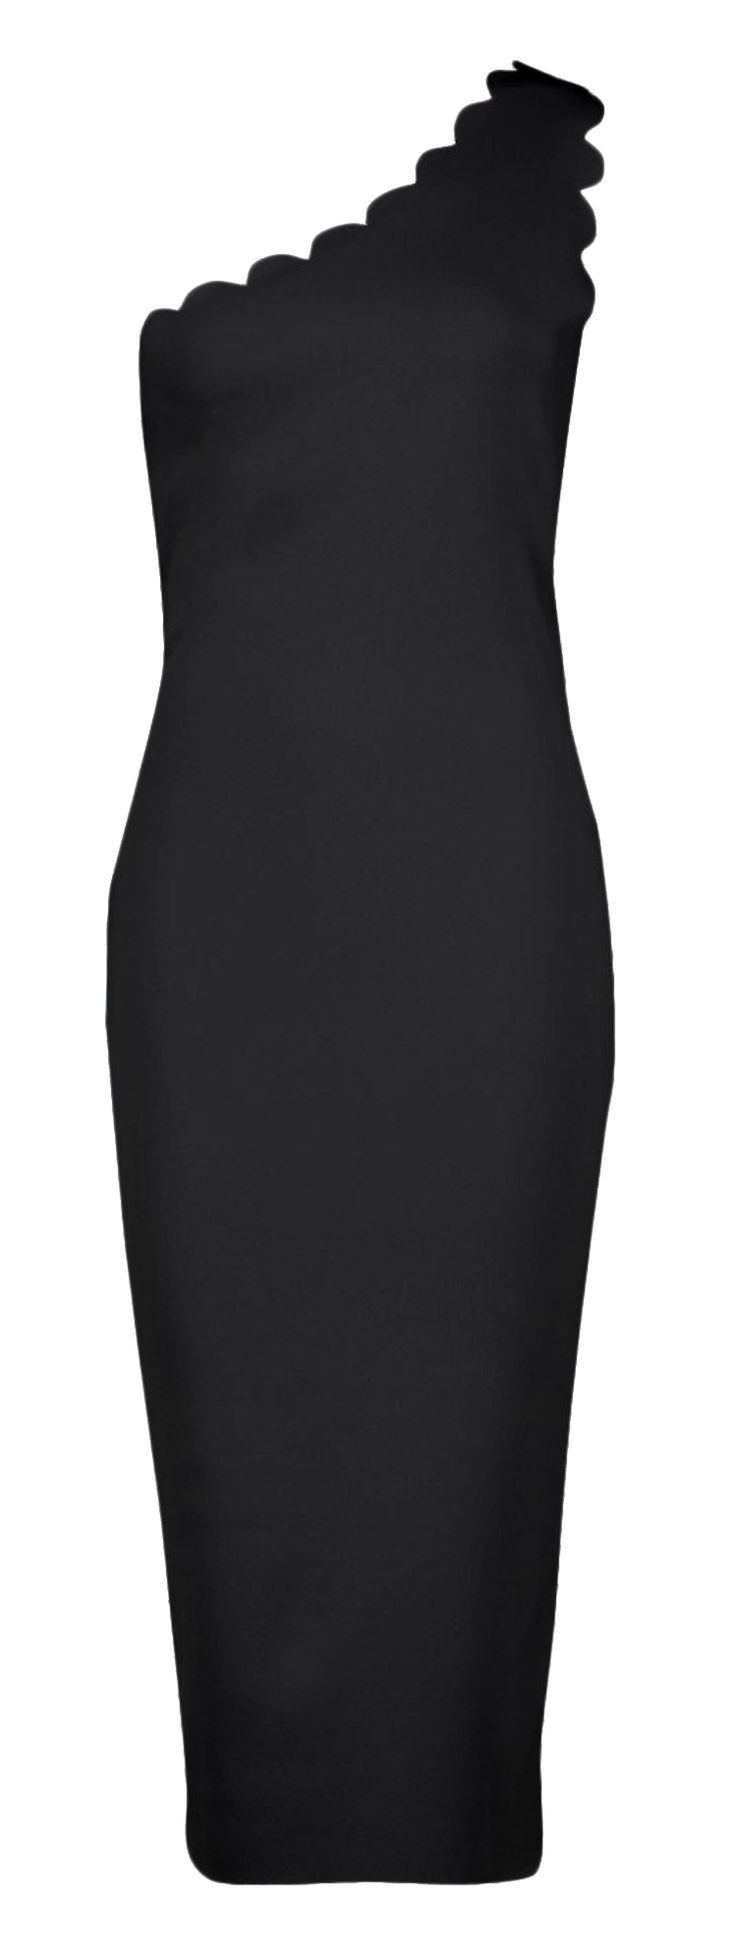 Cold Shoulder looks more pretty! Free shipping&eays return! This wave hem dress is detailed with body-con fit&slim fit! Take this LBD at Cupshe.com